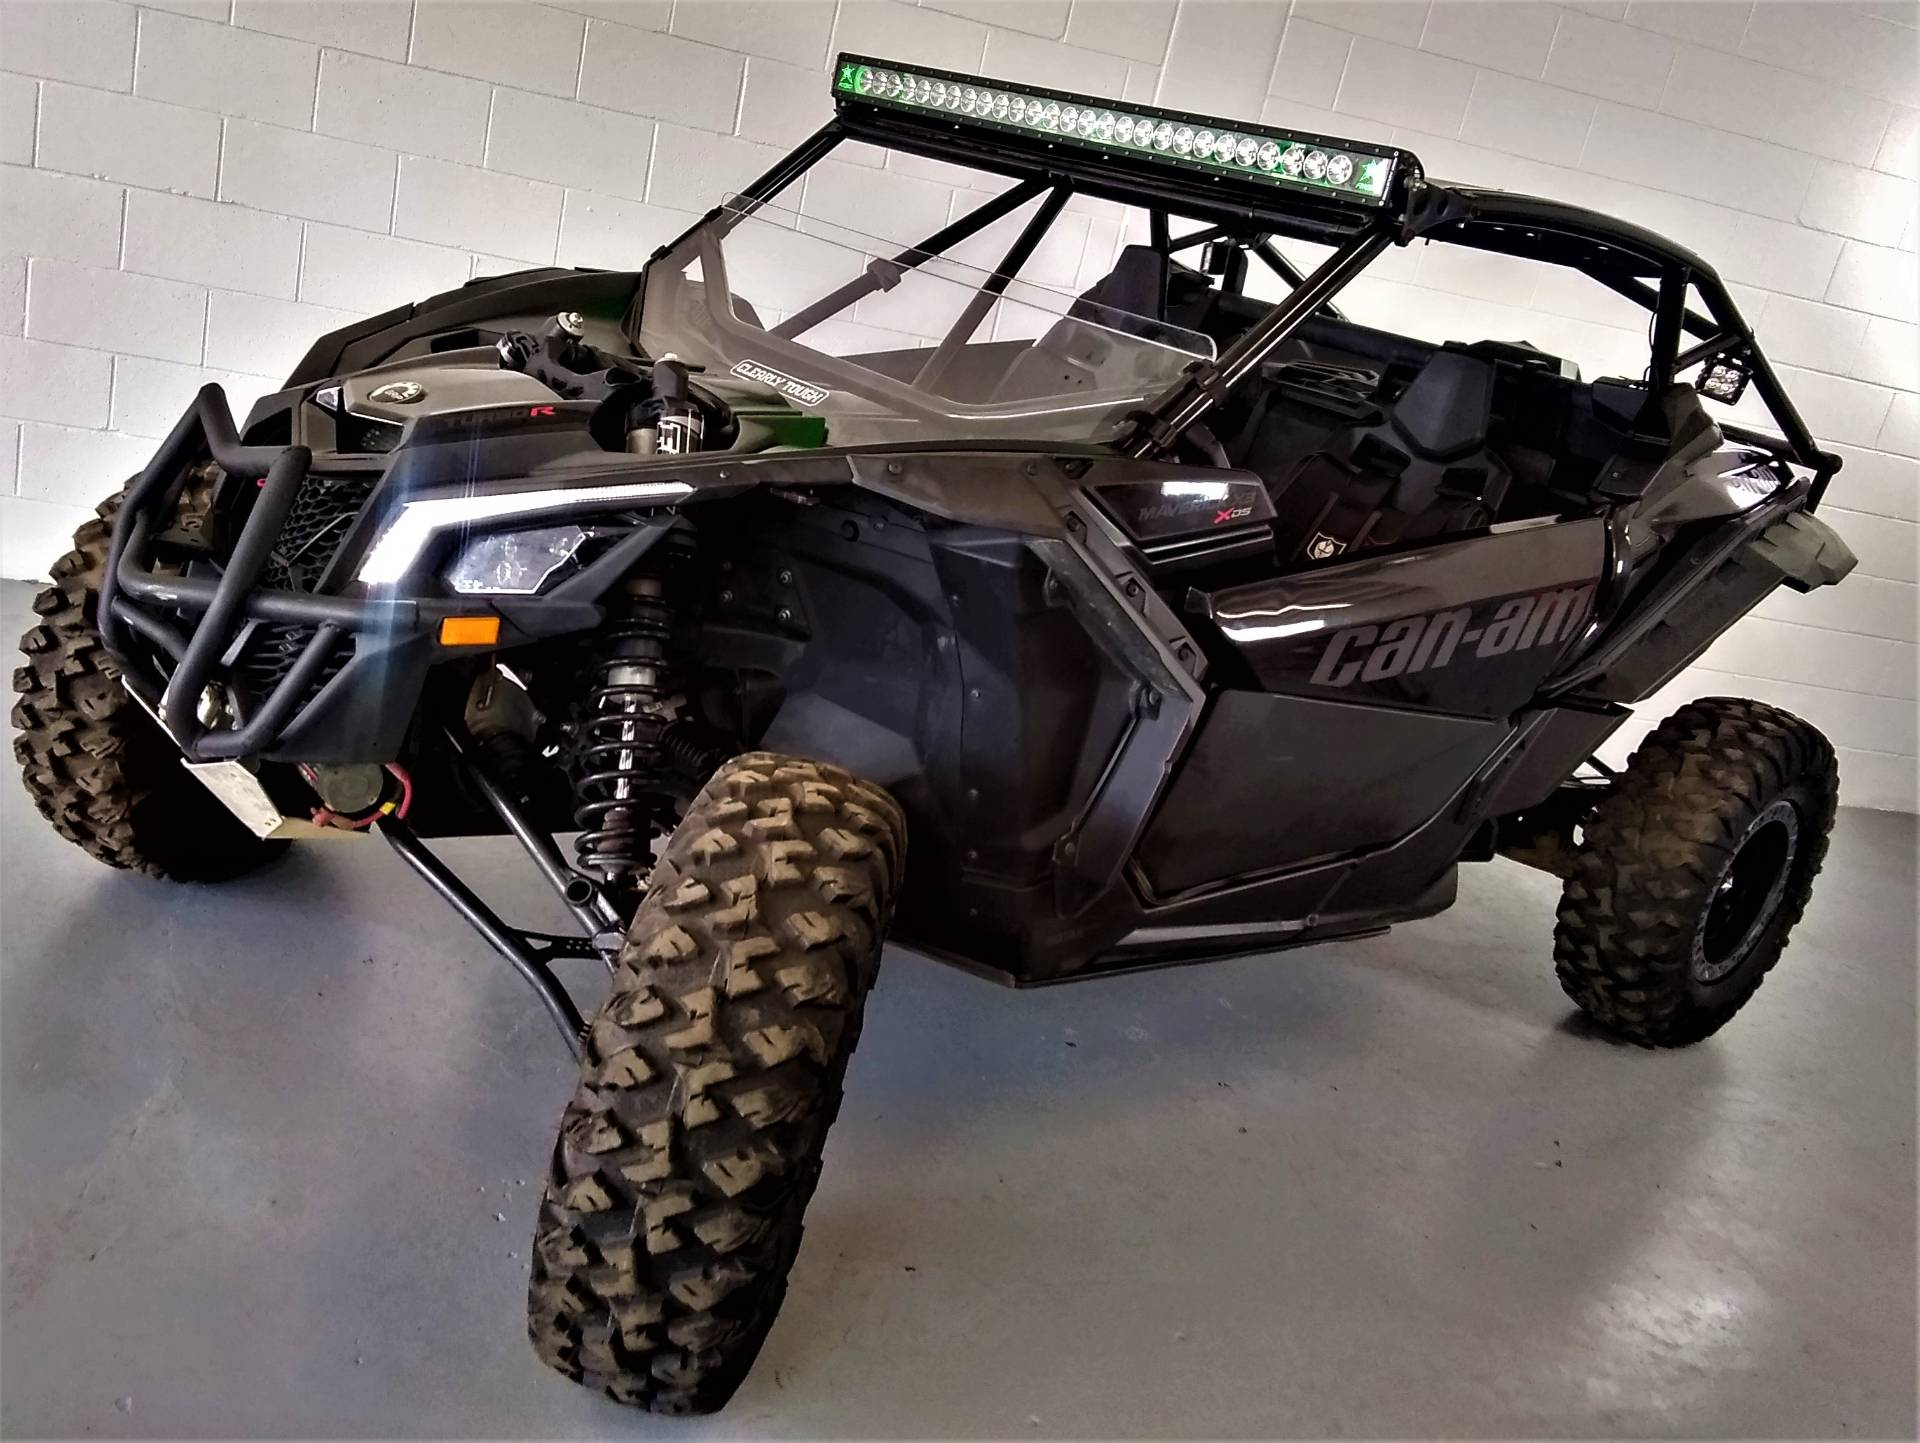 2017 Can-Am Maverick X3 X ds Turbo R in Stillwater, Oklahoma - Photo 2